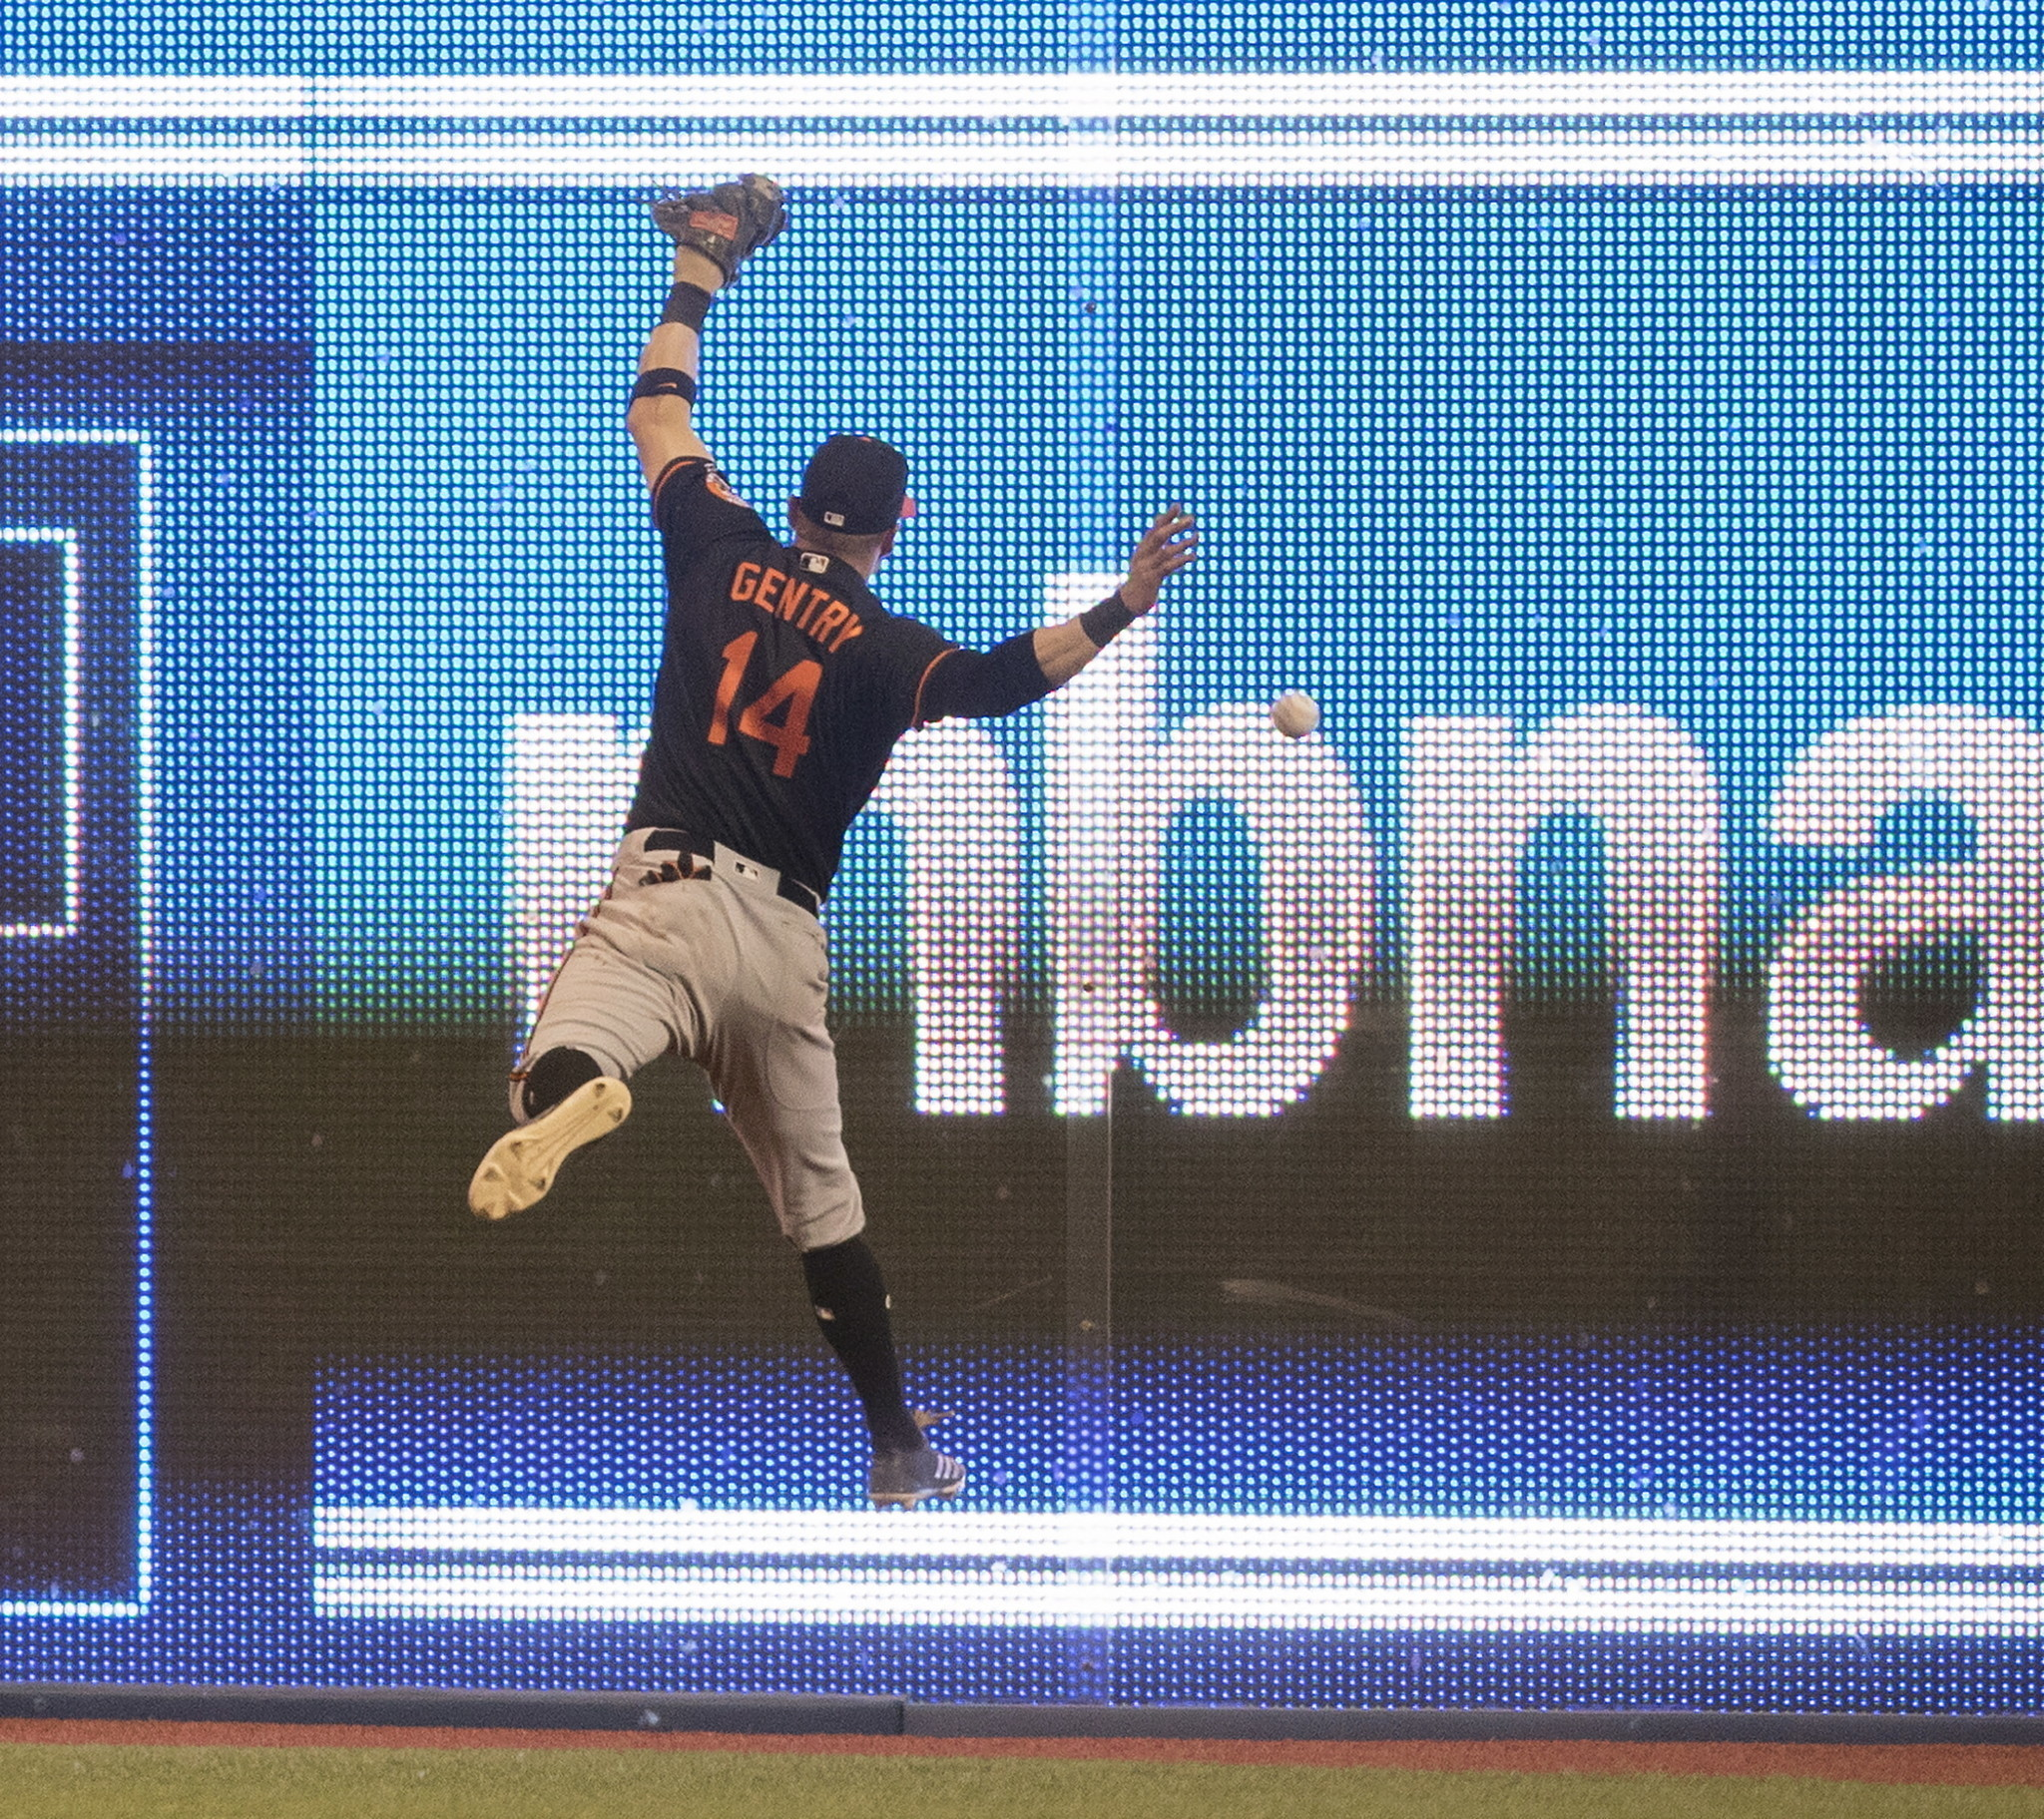 Bal-orioles-rewind-looking-back-at-friday-s-5-1-loss-to-the-blue-jays-20180608